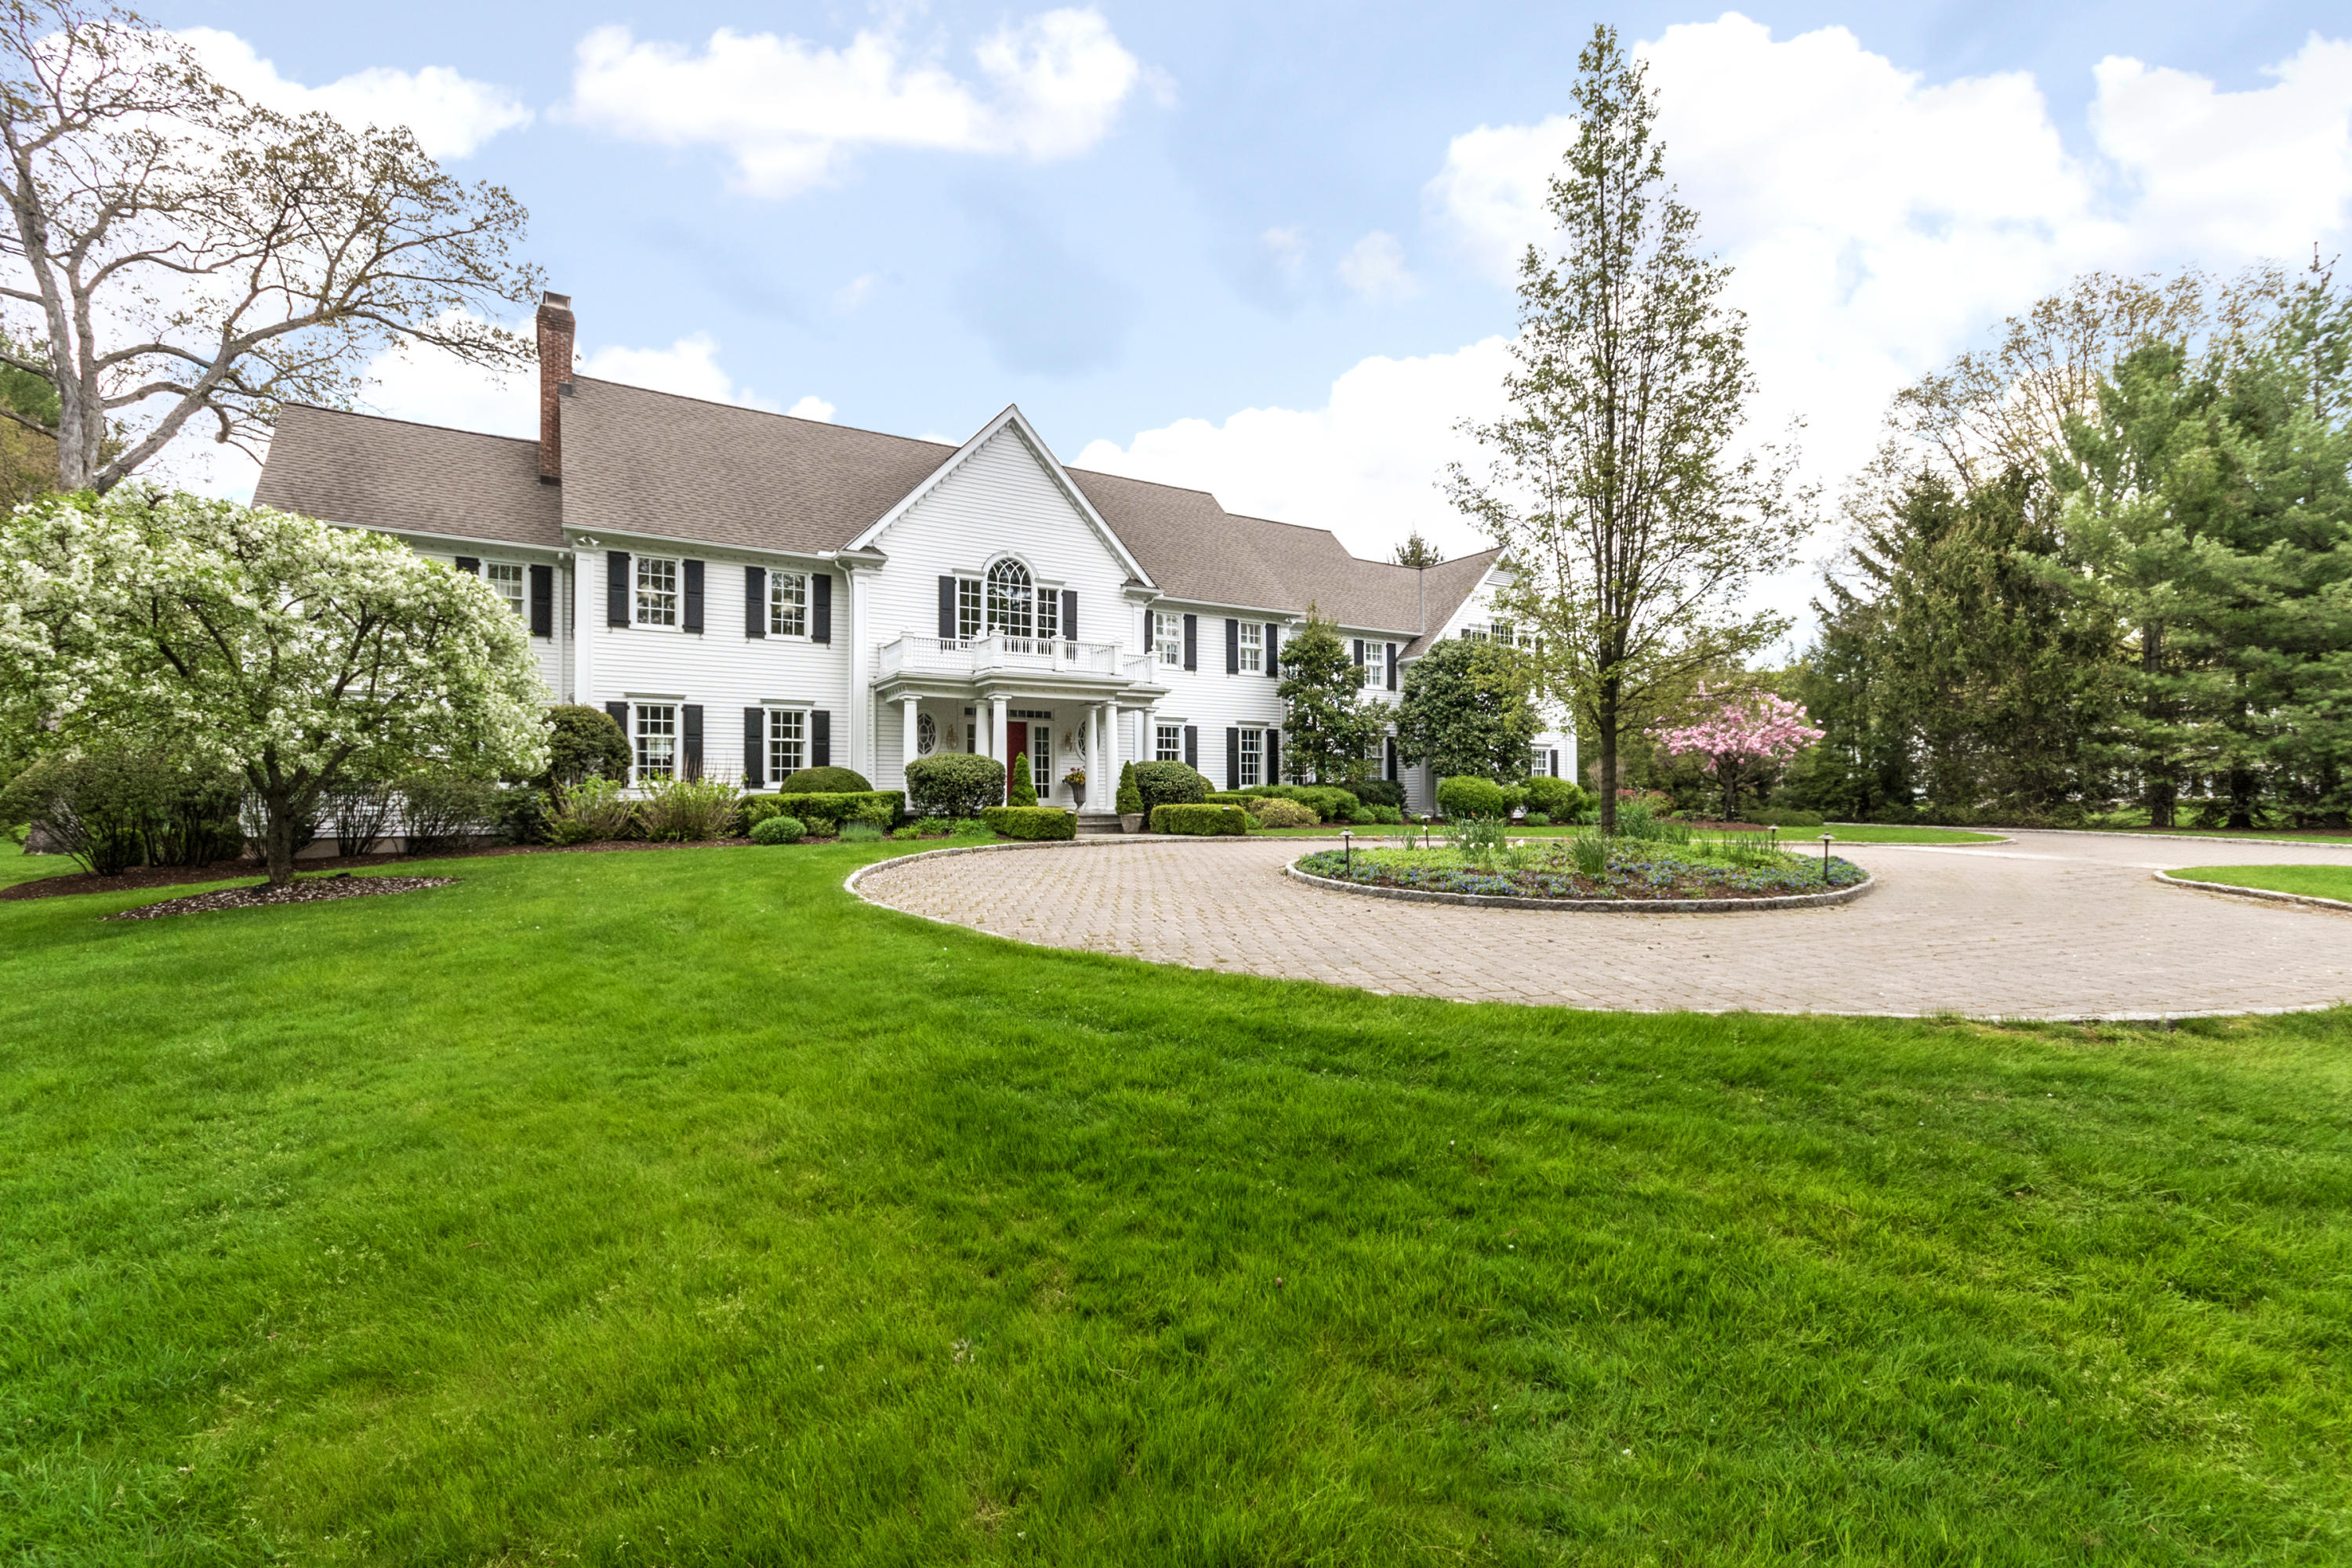 5 PEACH HILL ROAD, DARIEN, CT 06820